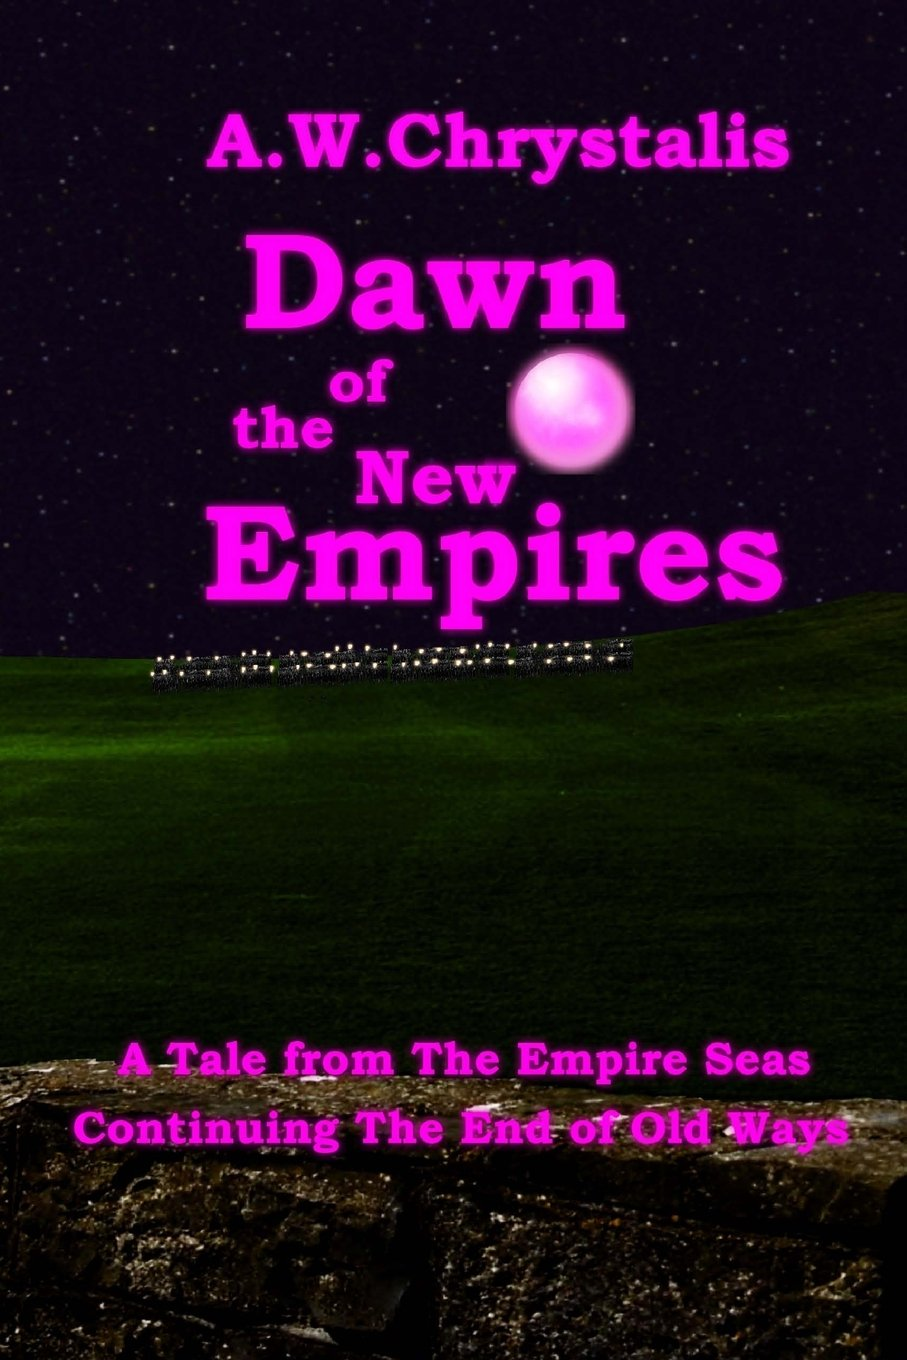 Dawn of the New Empires: A Tale from The Empire Seas (The End of Old Ways) (Volume 6) ebook